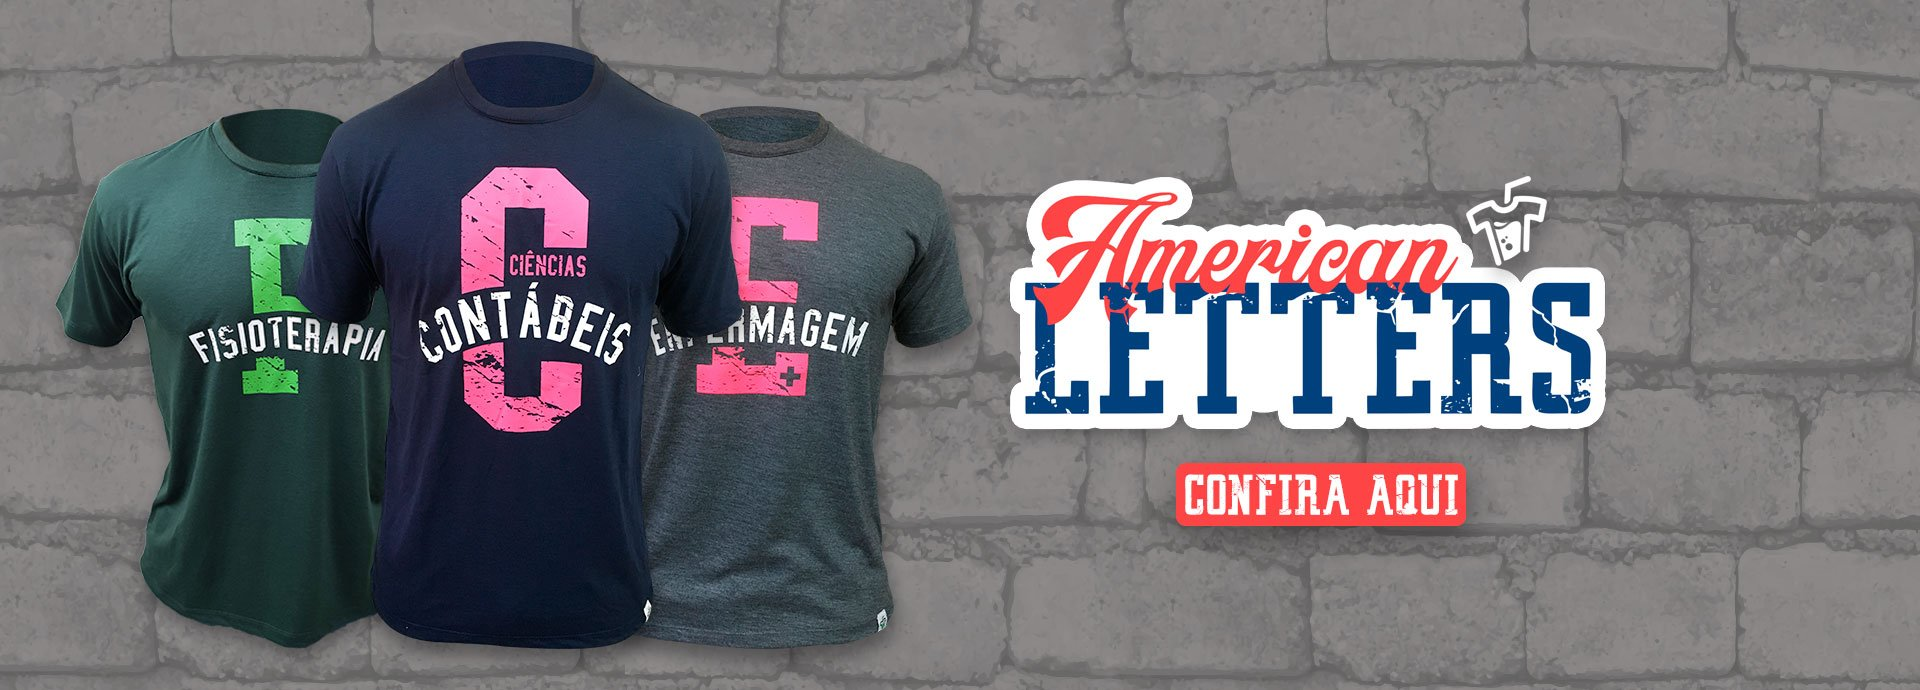 Banner Linha American Letters